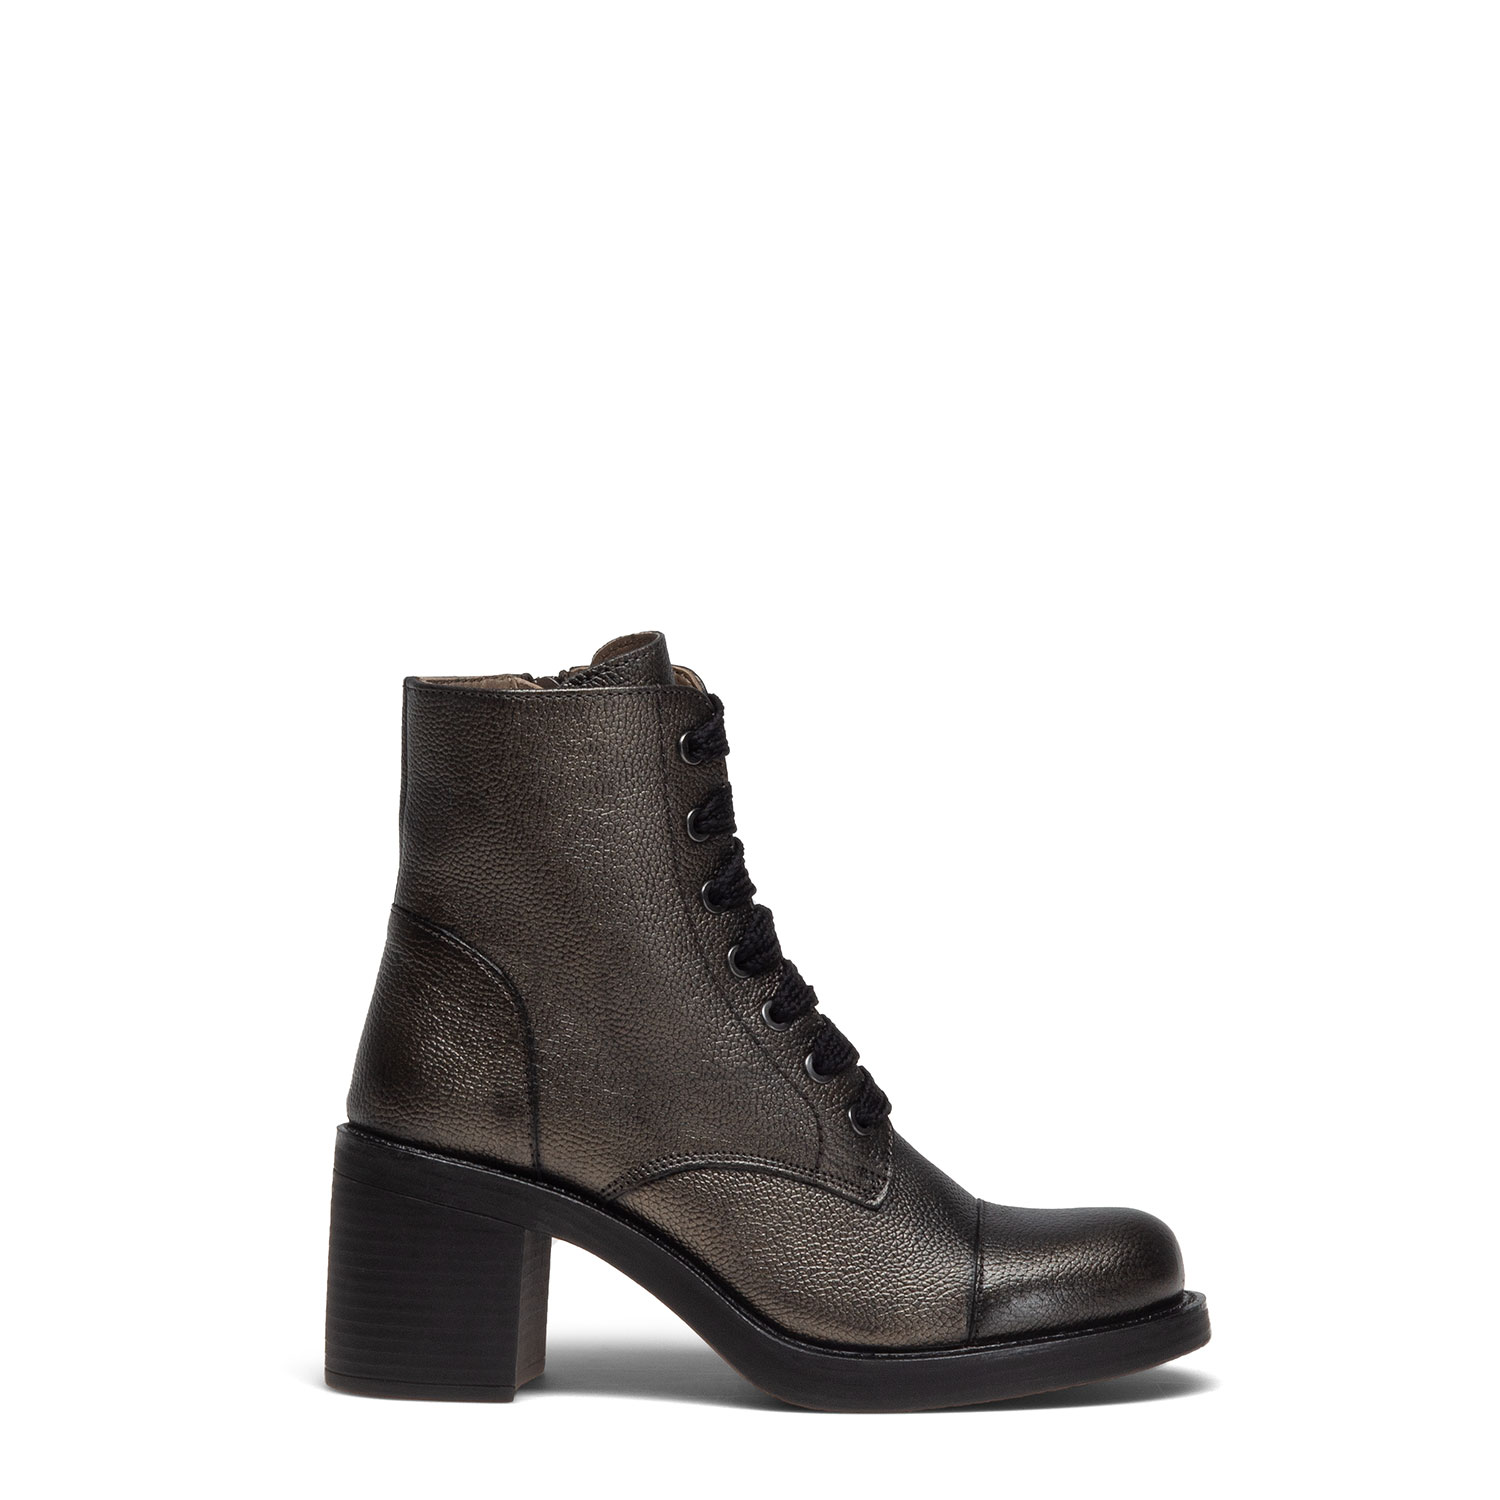 Women's ankle boots PAZOLINI IA-X5580-9